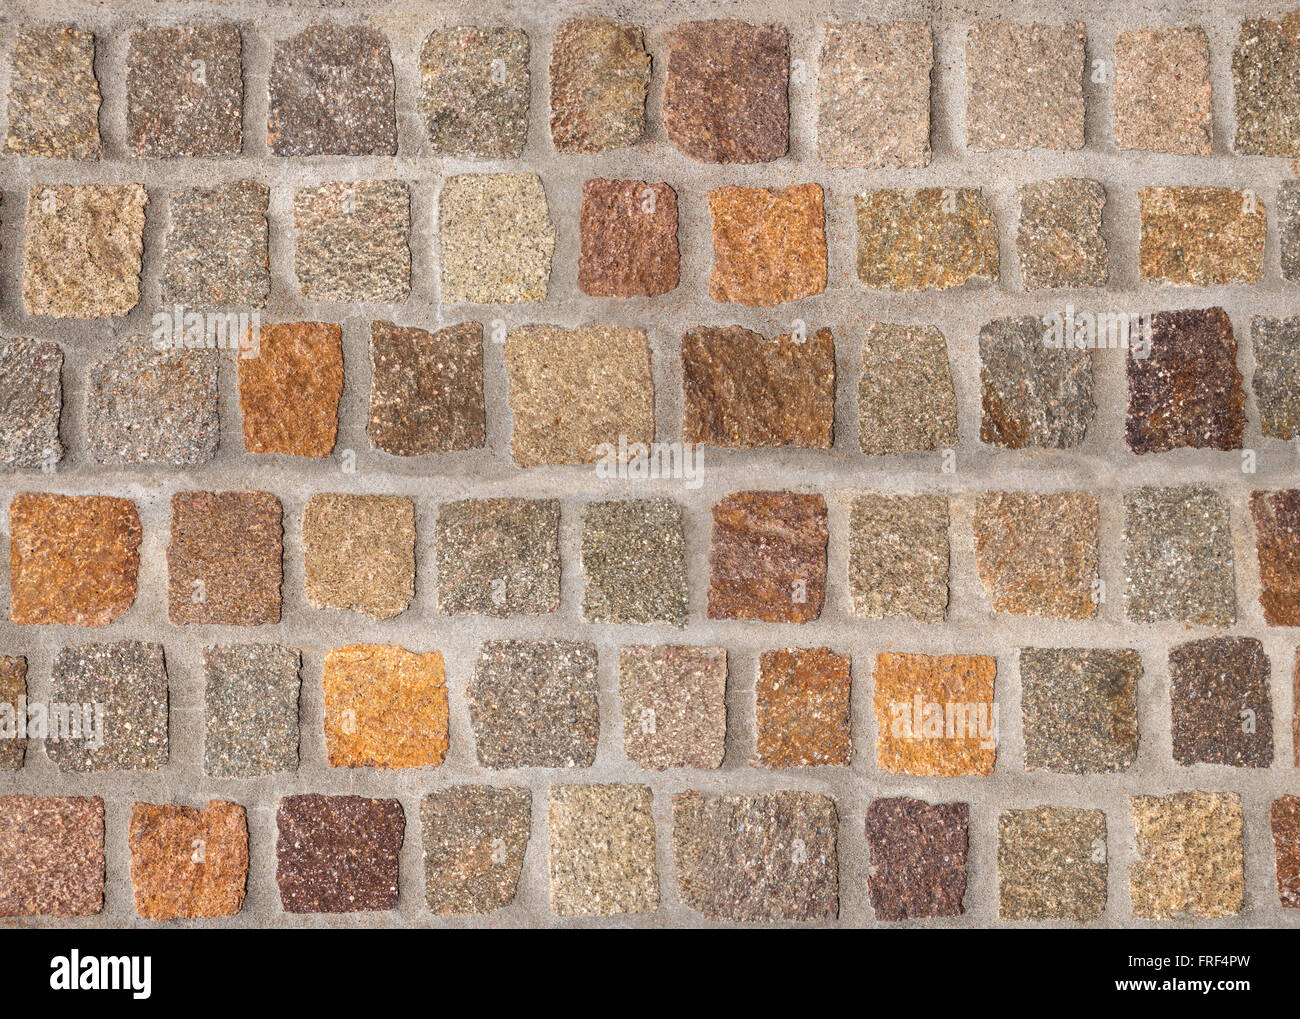 Pattern of varicolored cobblestones in brown and gray in close-up - Stock Image